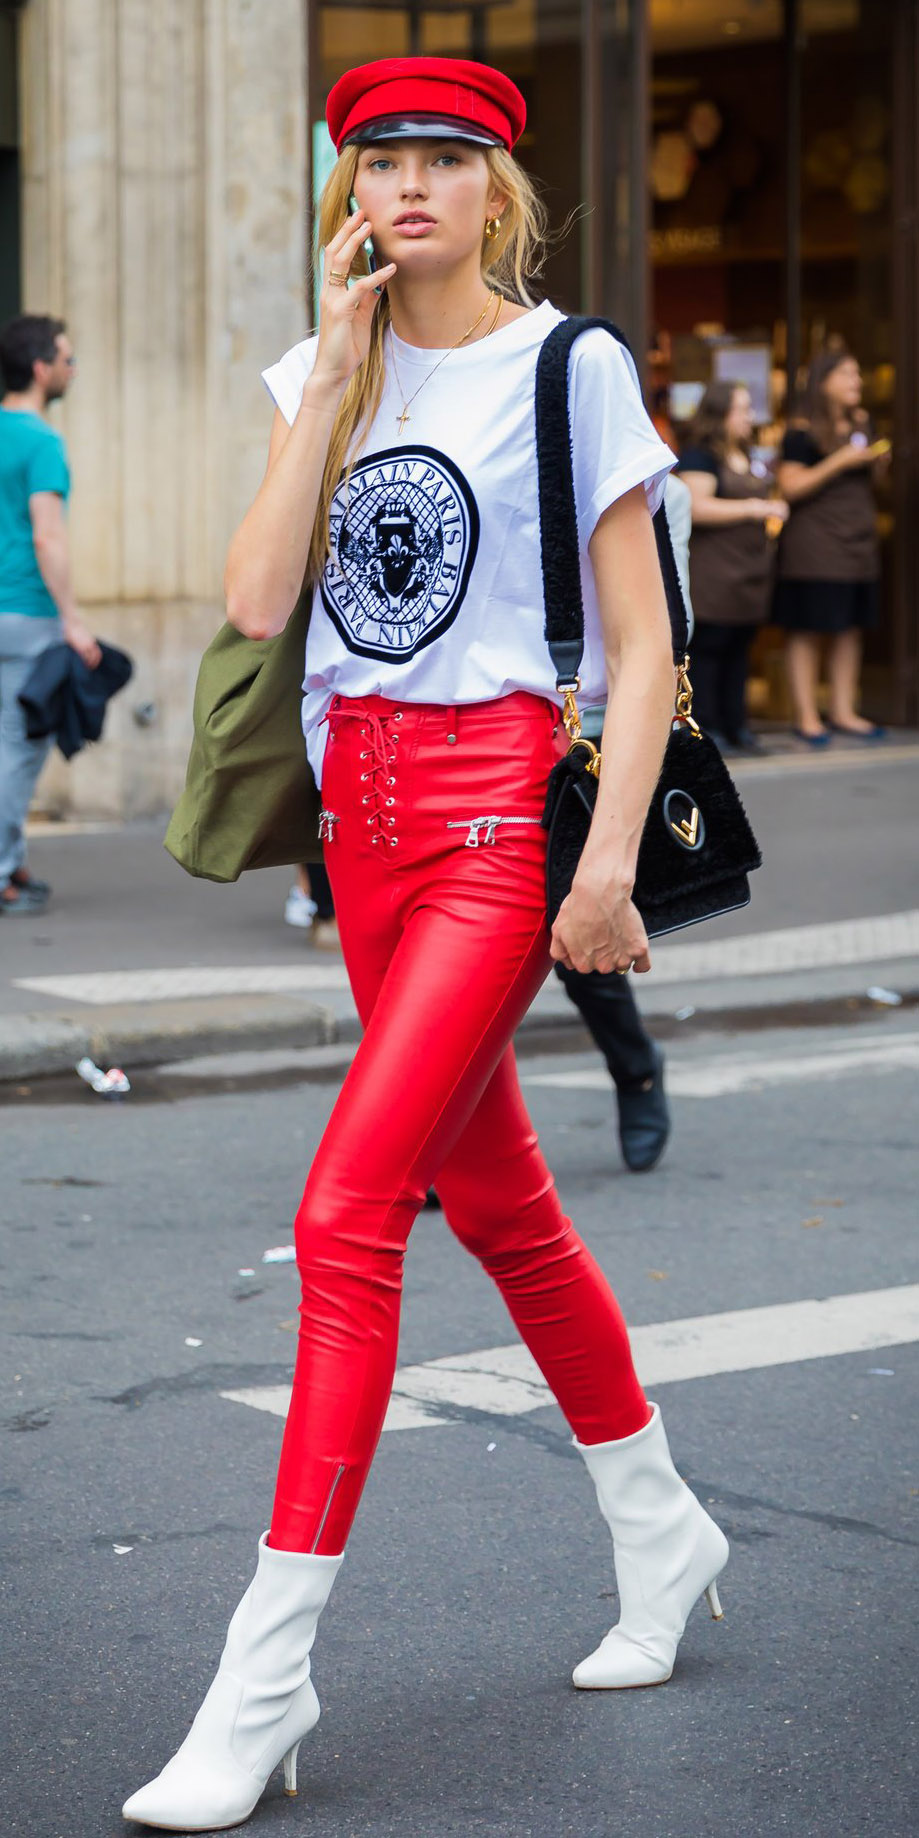 how-to-style-red-skinny-jeans-leather-white-graphic-tee-blonde-newsboy-cap-hat-black-bag-white-shoe-booties-fall-winter-fashion-lunch.jpg